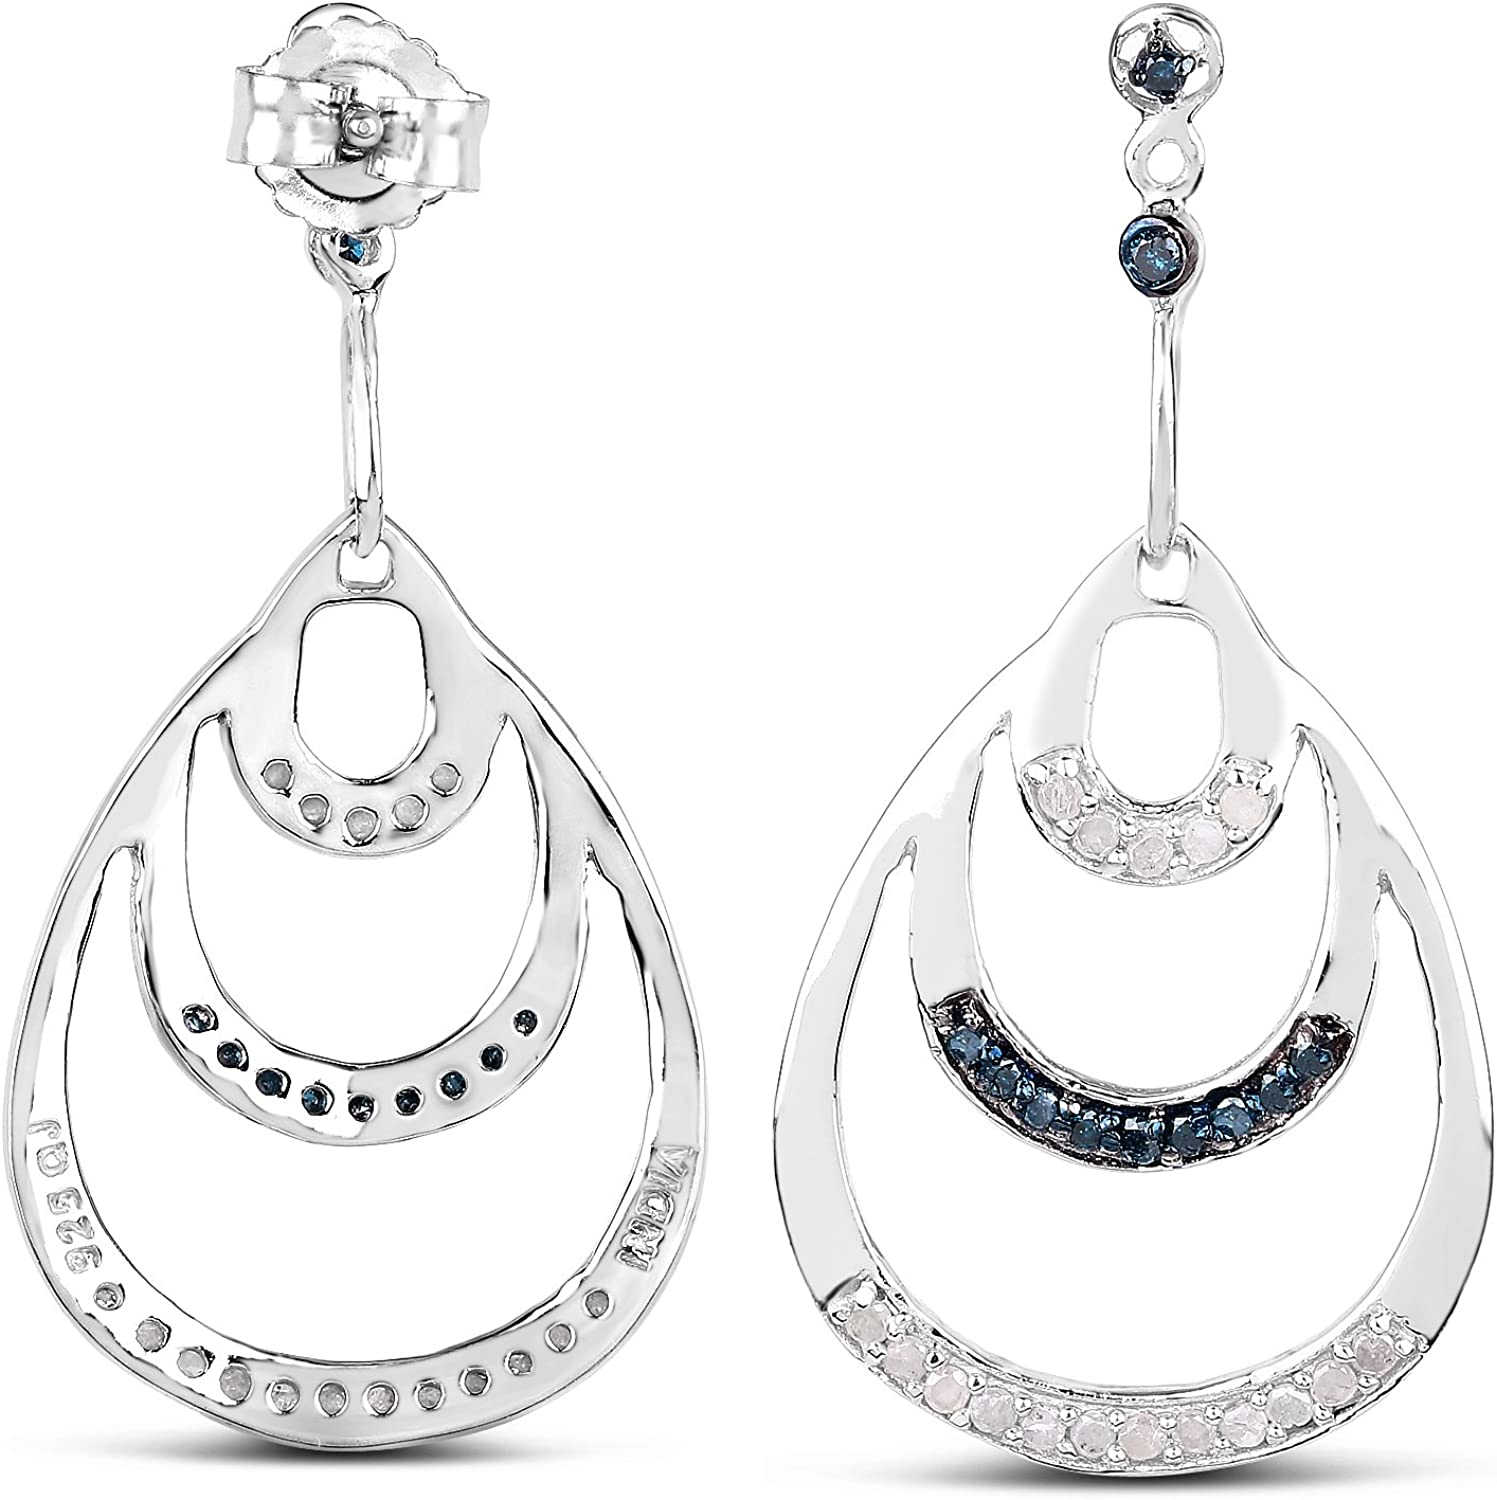 0.52 Carat Genuine White Diamond and Blue Diamond .925 Sterling Silver Earrings